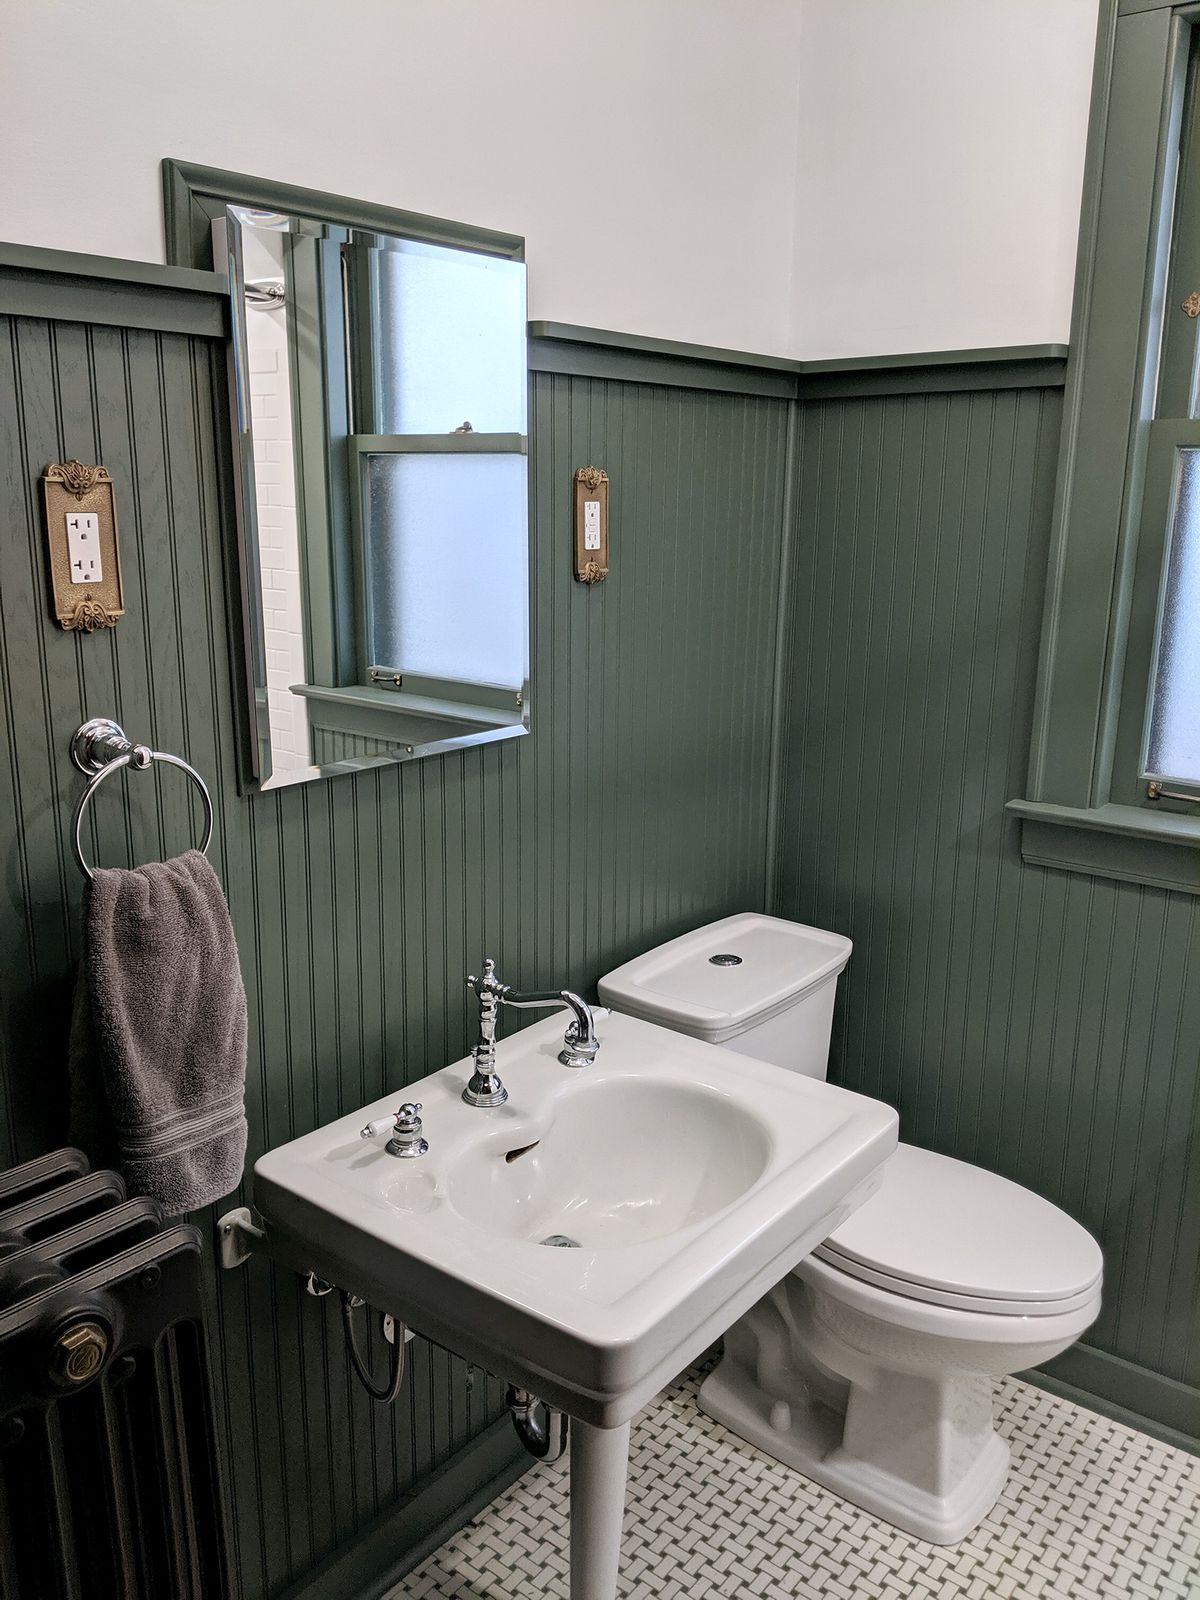 A bathroom with green wainscotting, white and green cross-hatched tile, a pedestal sink and a toilet.